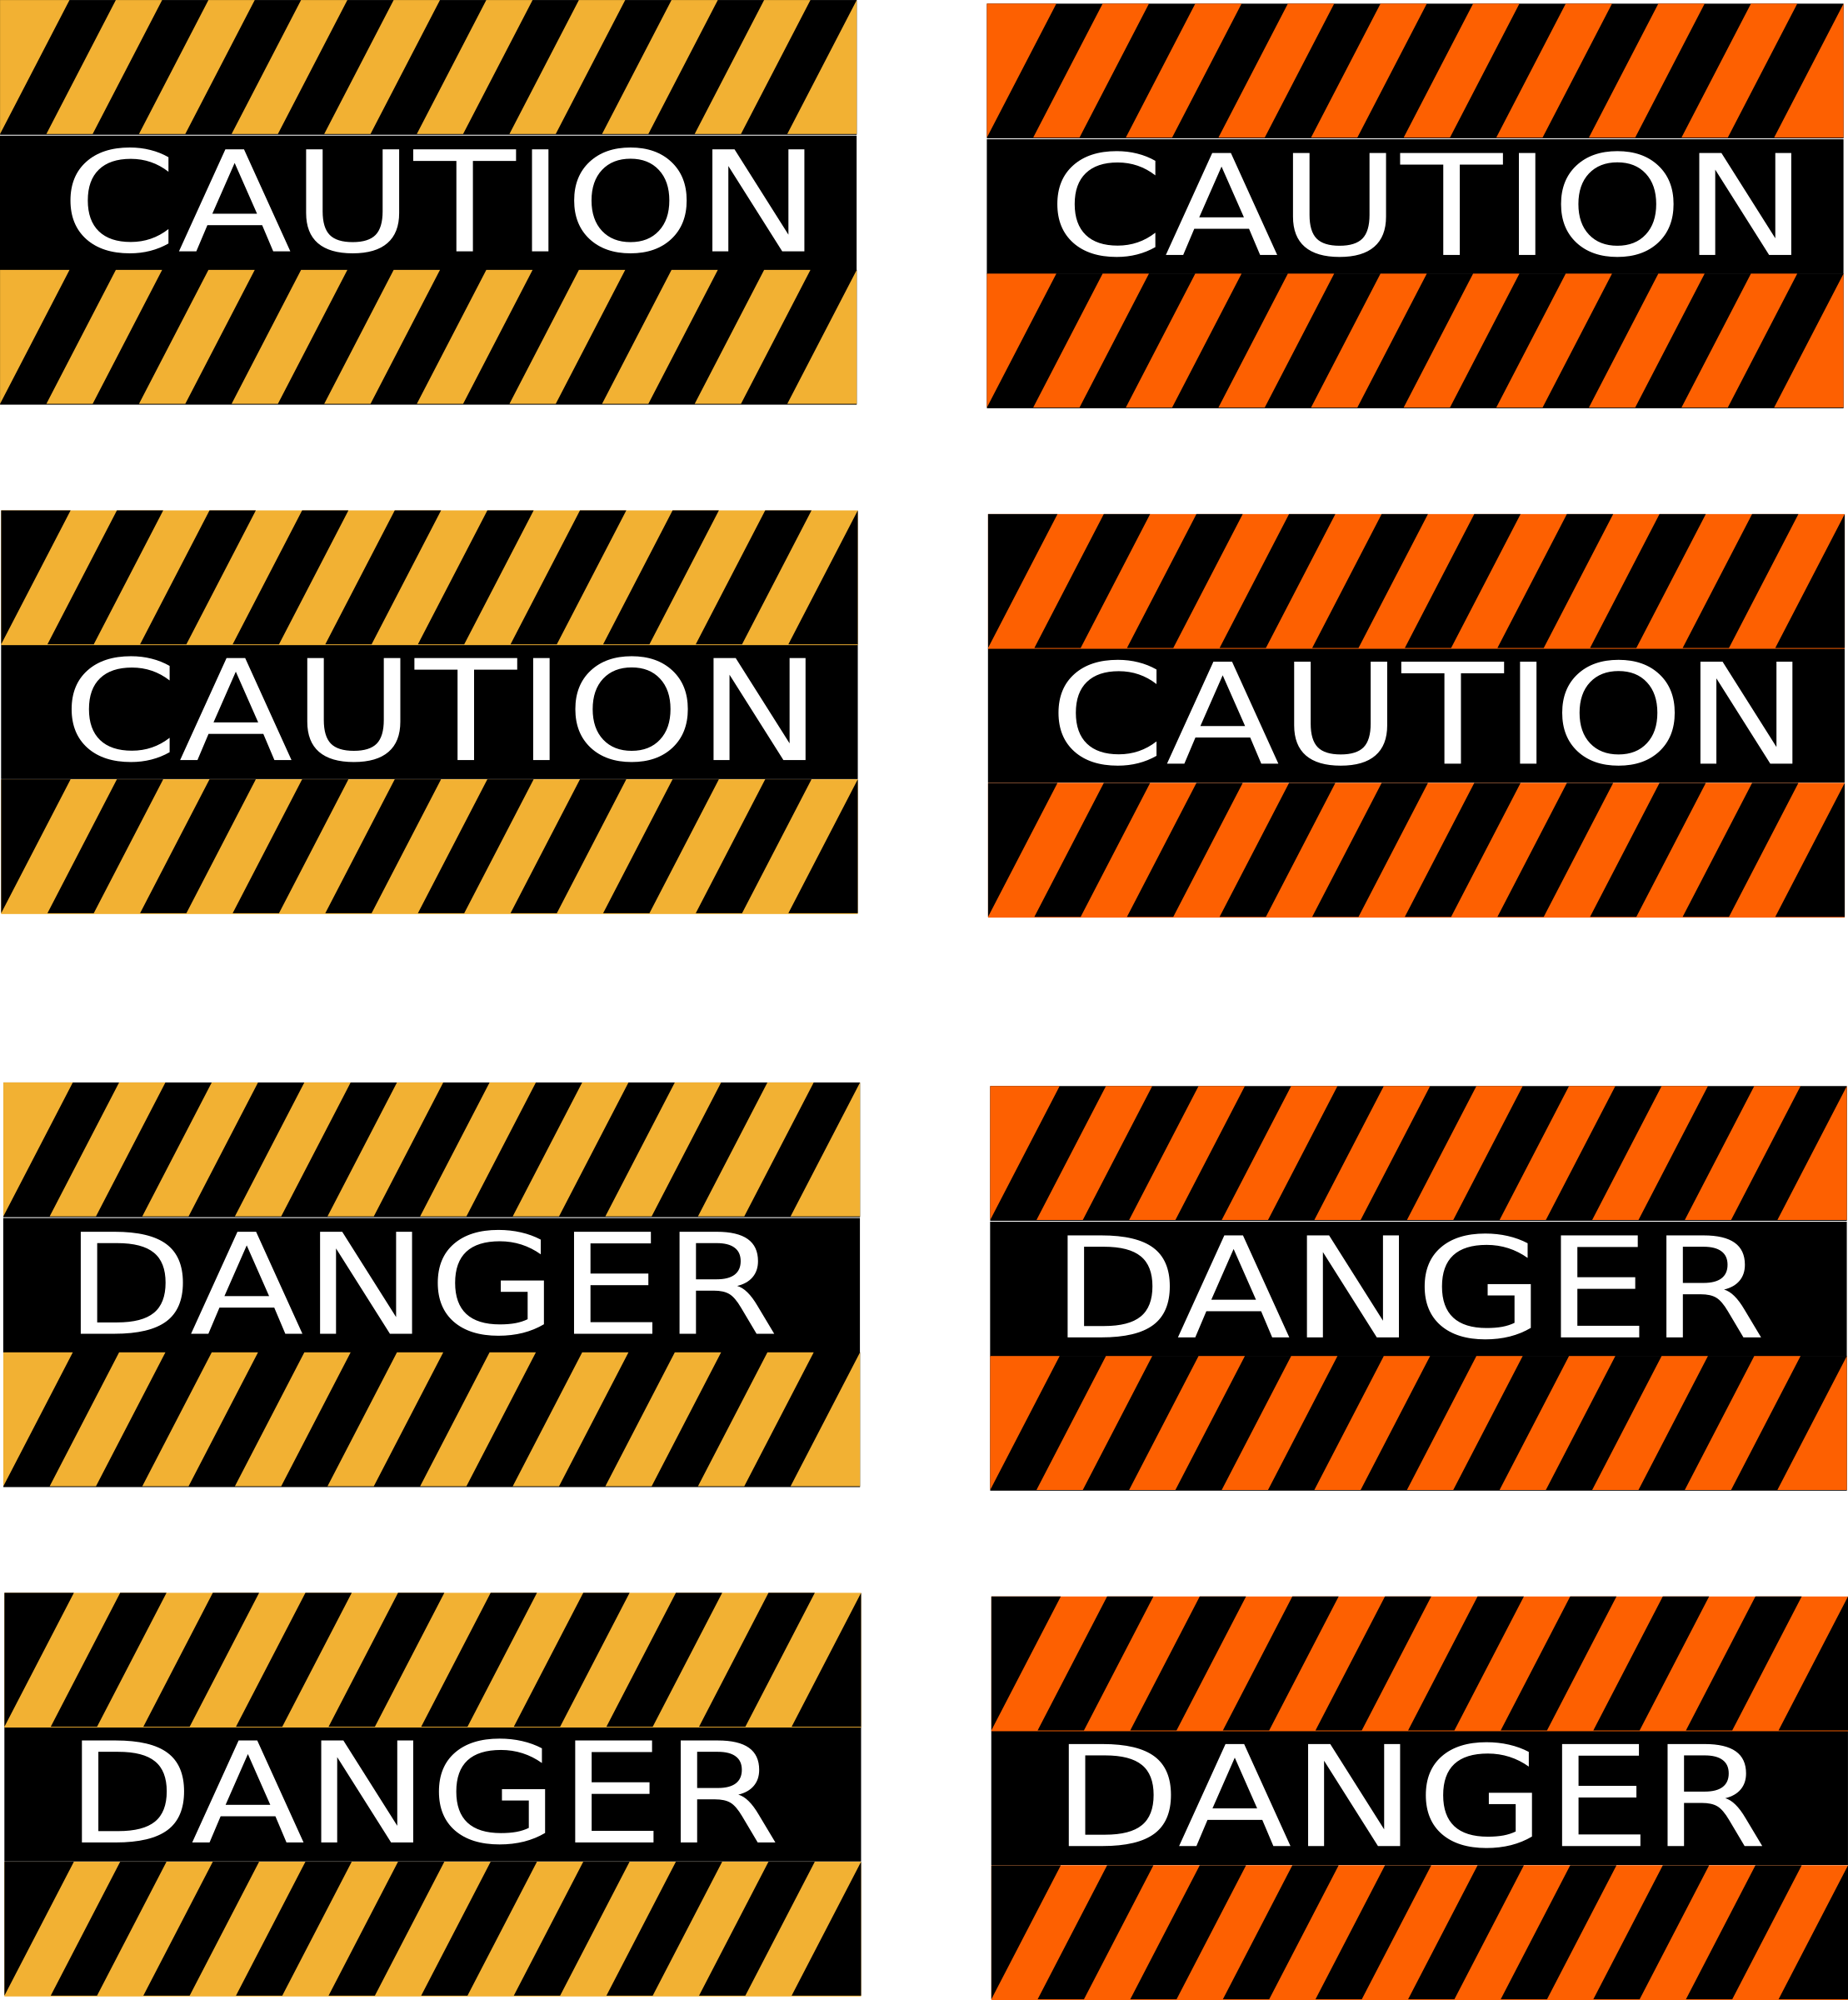 Caution and Danger Signs by Rfc1394